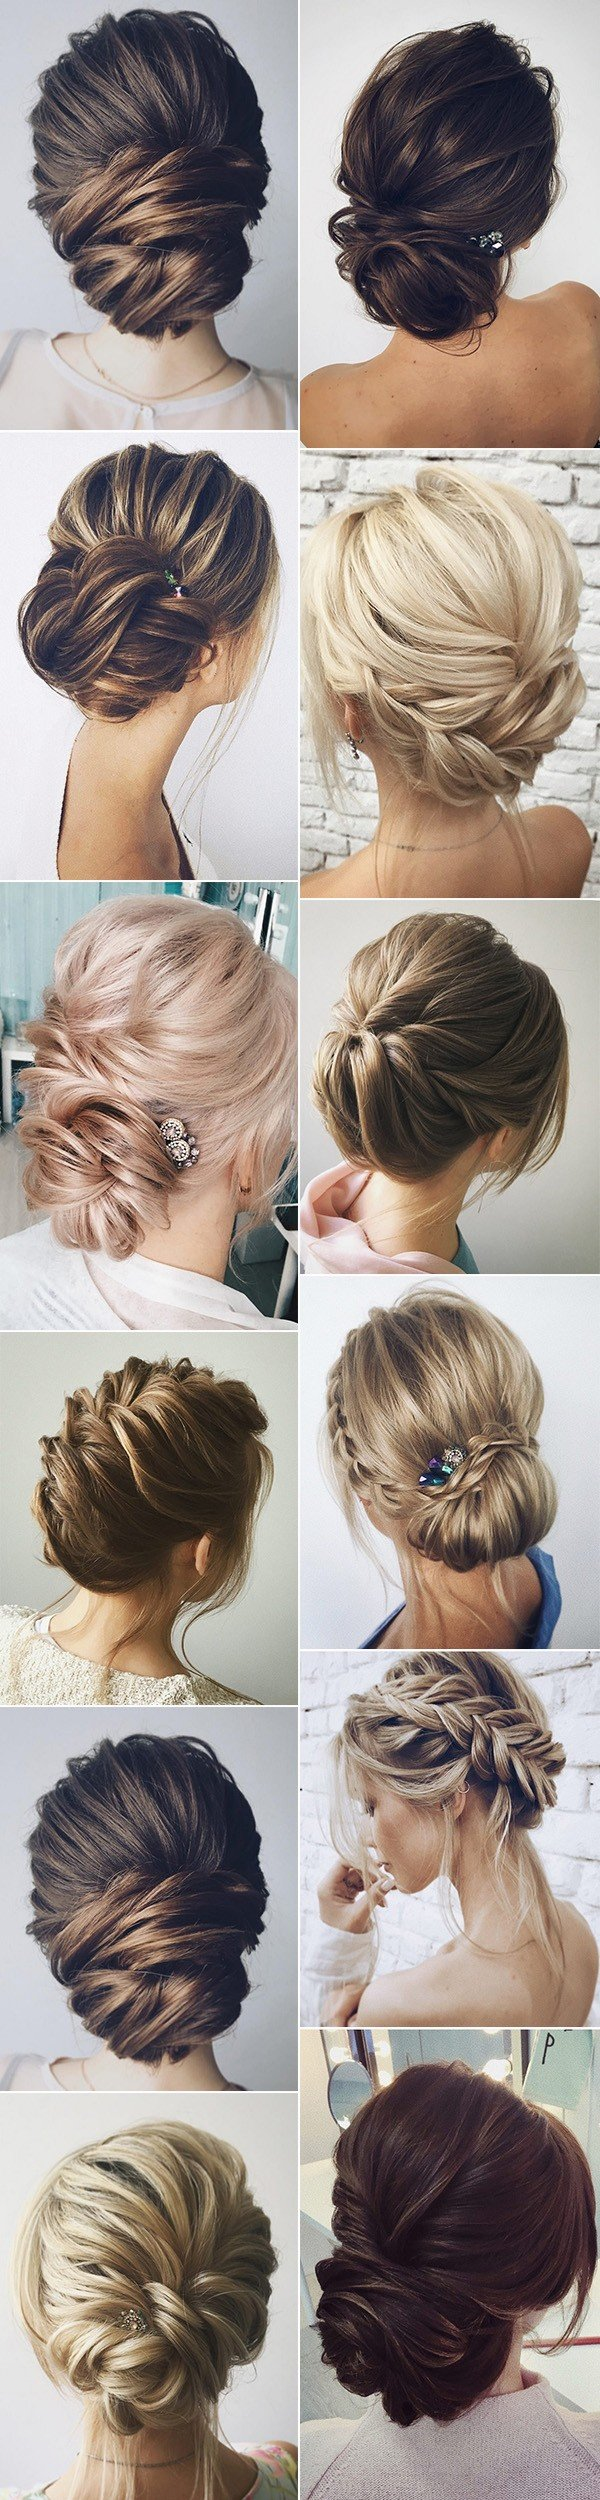 elegant bridal updos wedding hairstyles